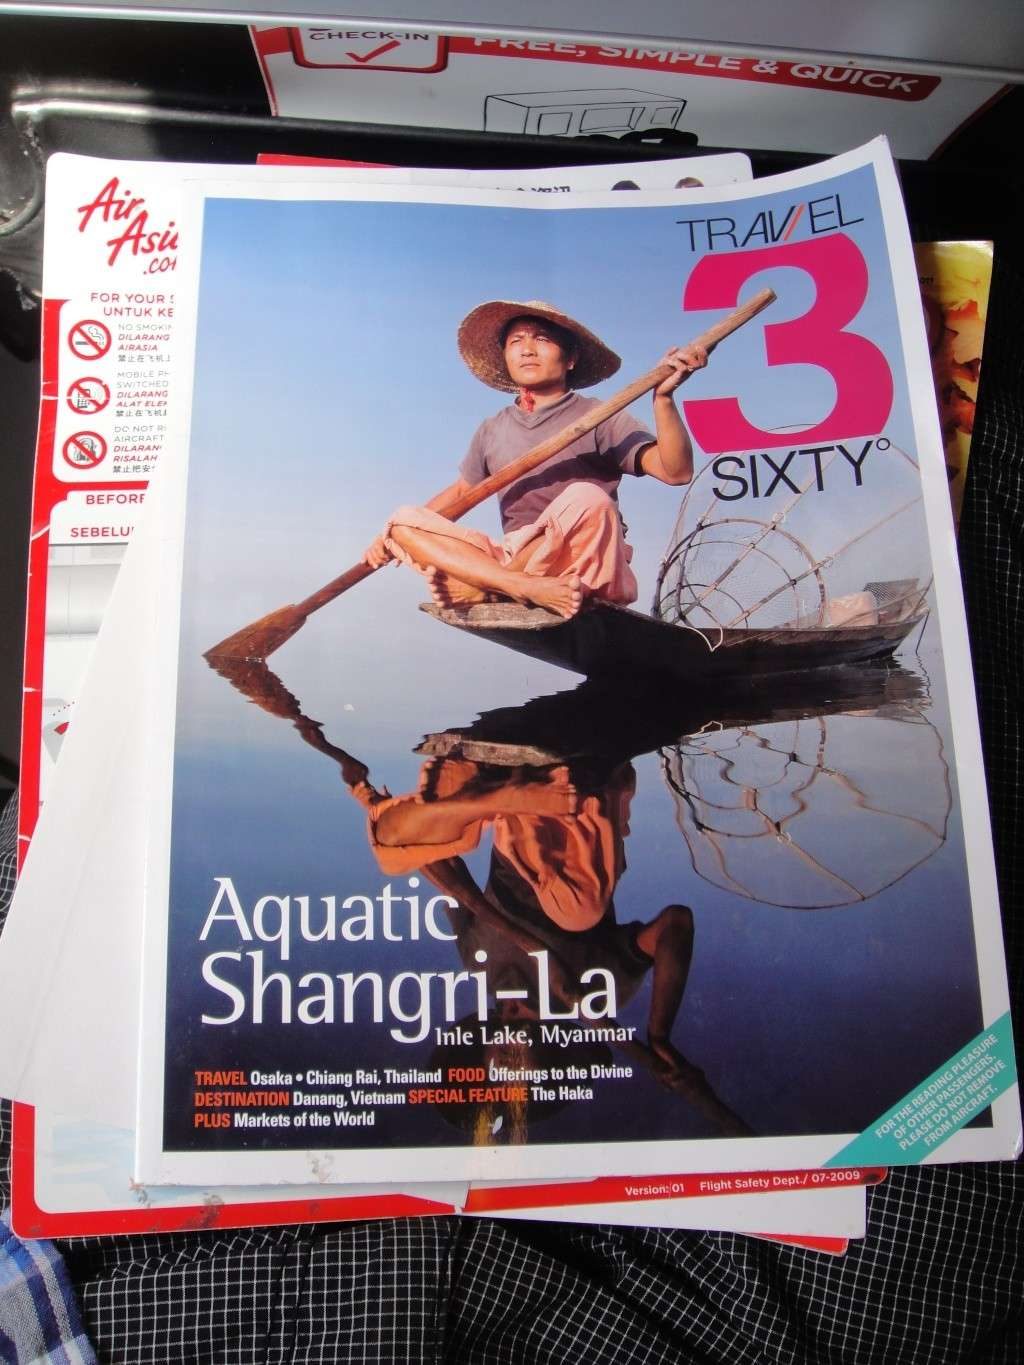 Flight magazine of AirAsia